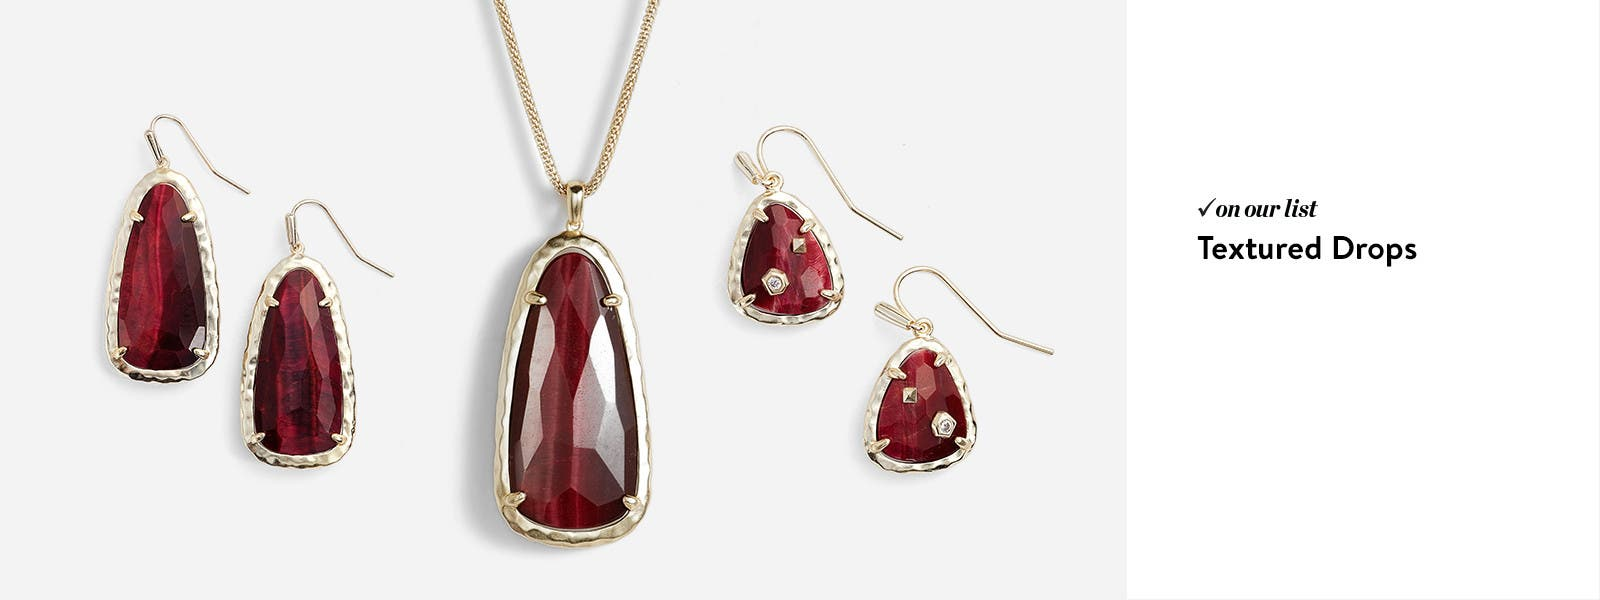 Colorful Stones Framed In Delicate Metals From Kendra Scott And More  Earrings · Necklaces